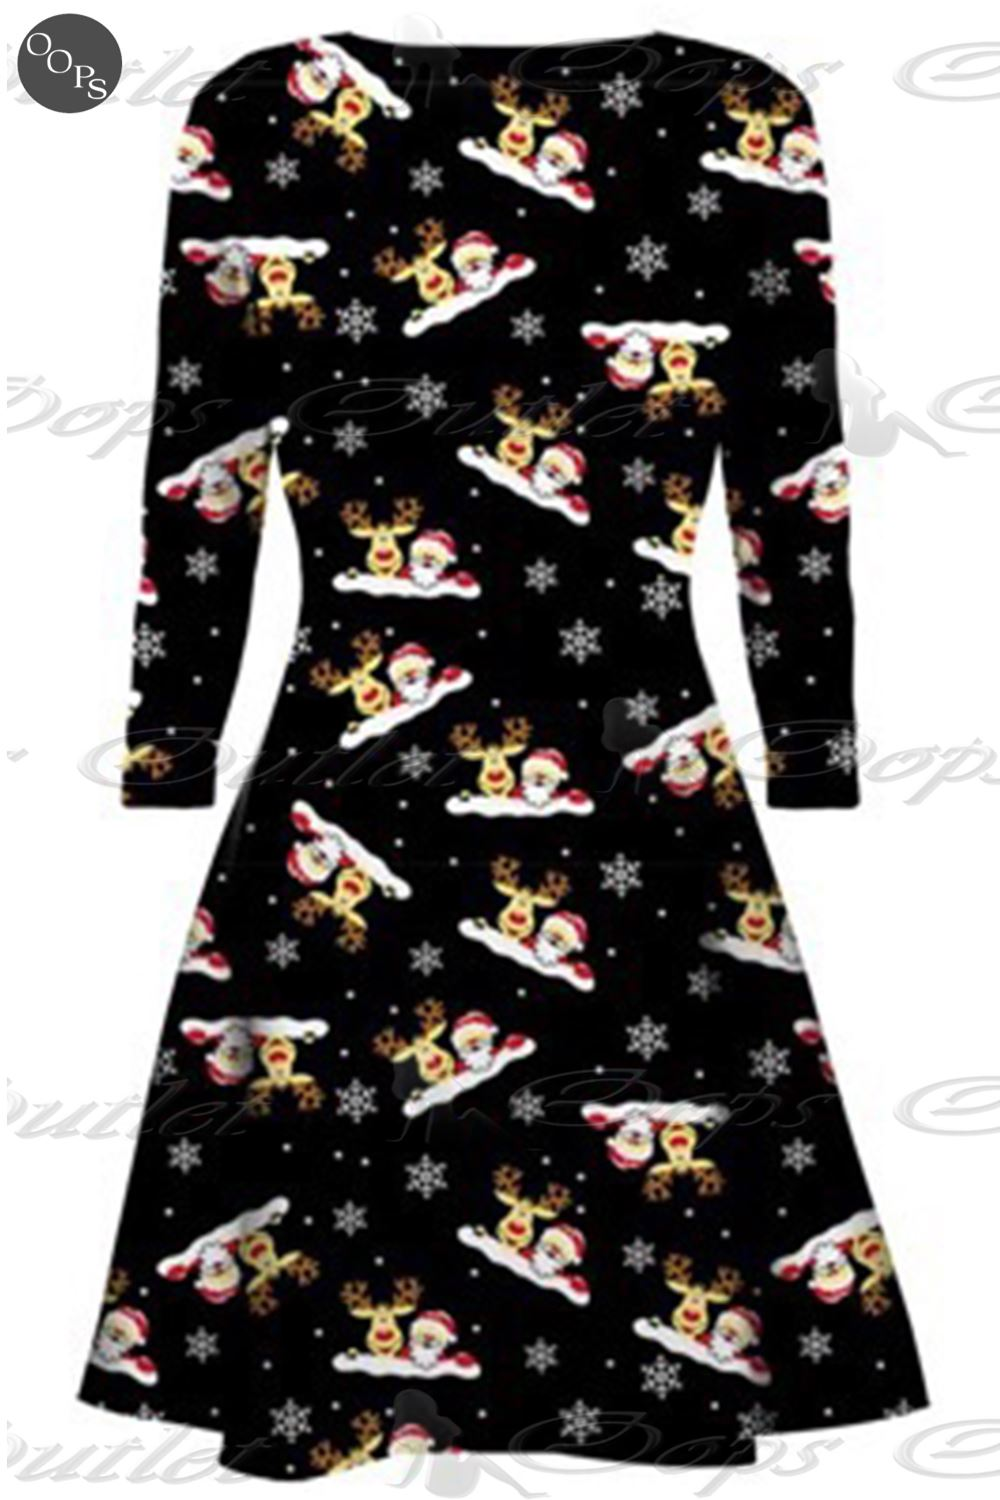 Free shipping christmas dresses online store. Best christmas dresses for sale. Cheap christmas dresses with excellent quality and fast delivery.   entefile.gq